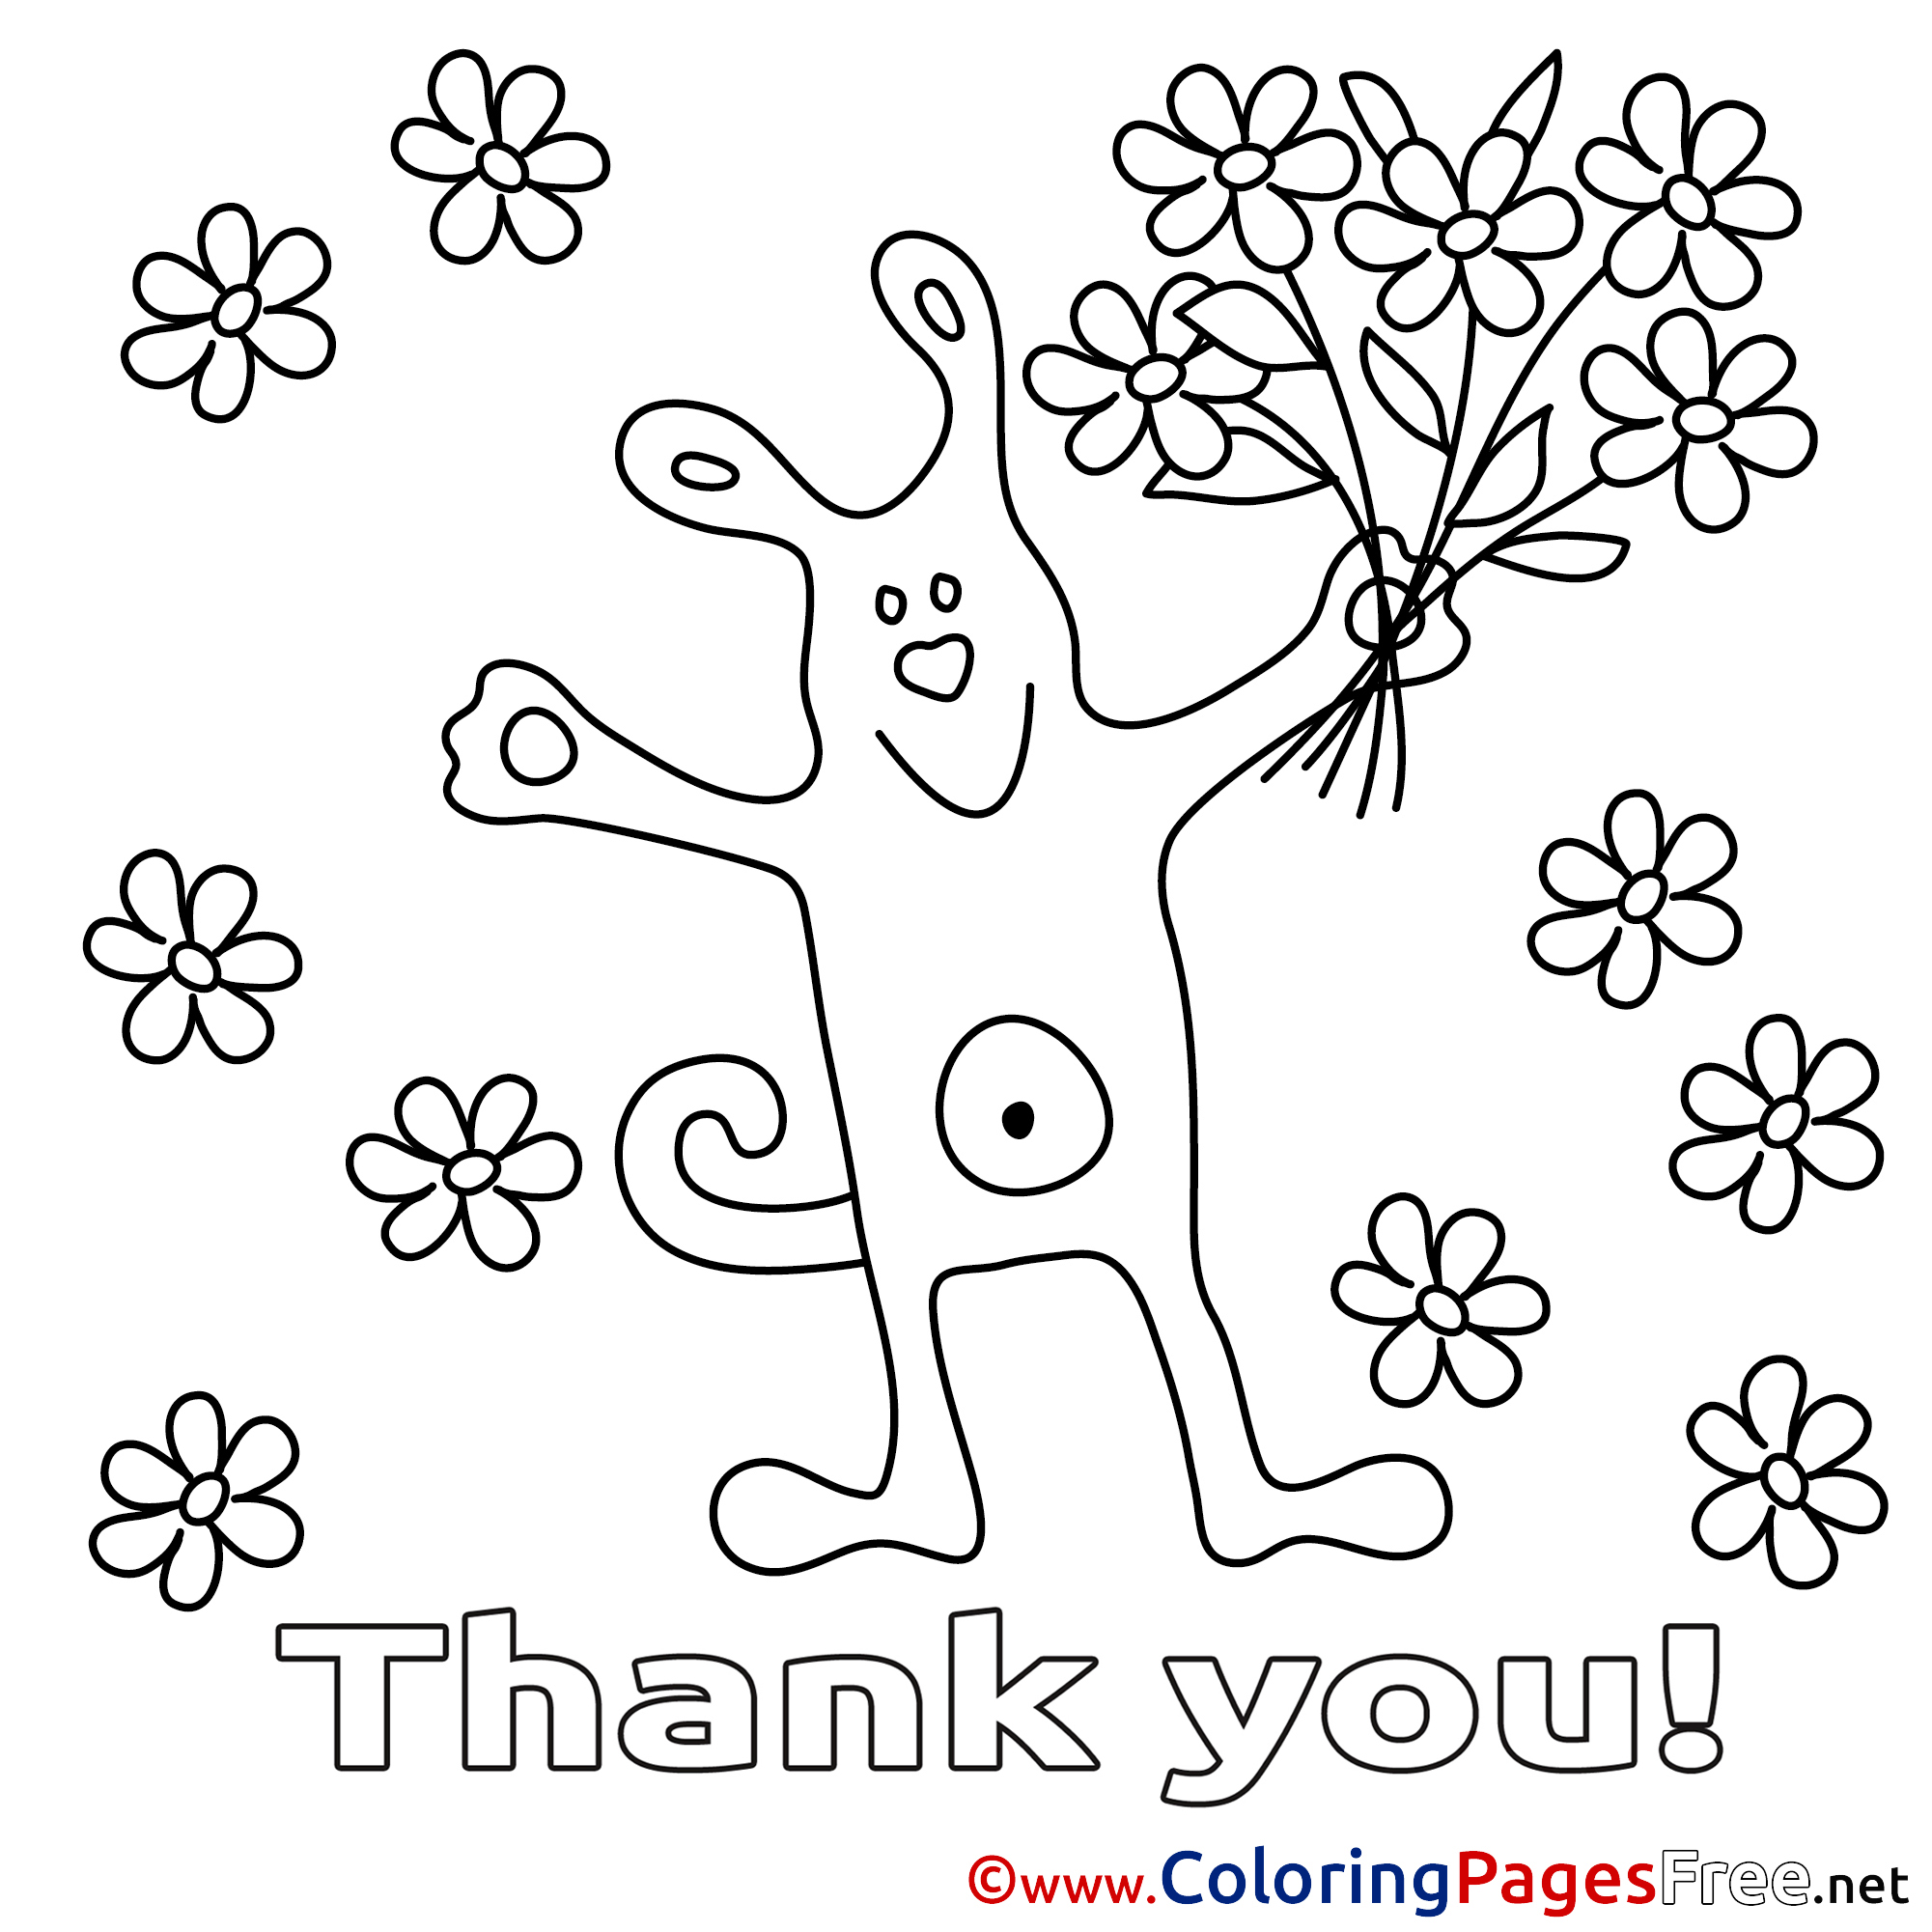 Bouquet Dog Coloring Pages Thank You For Free